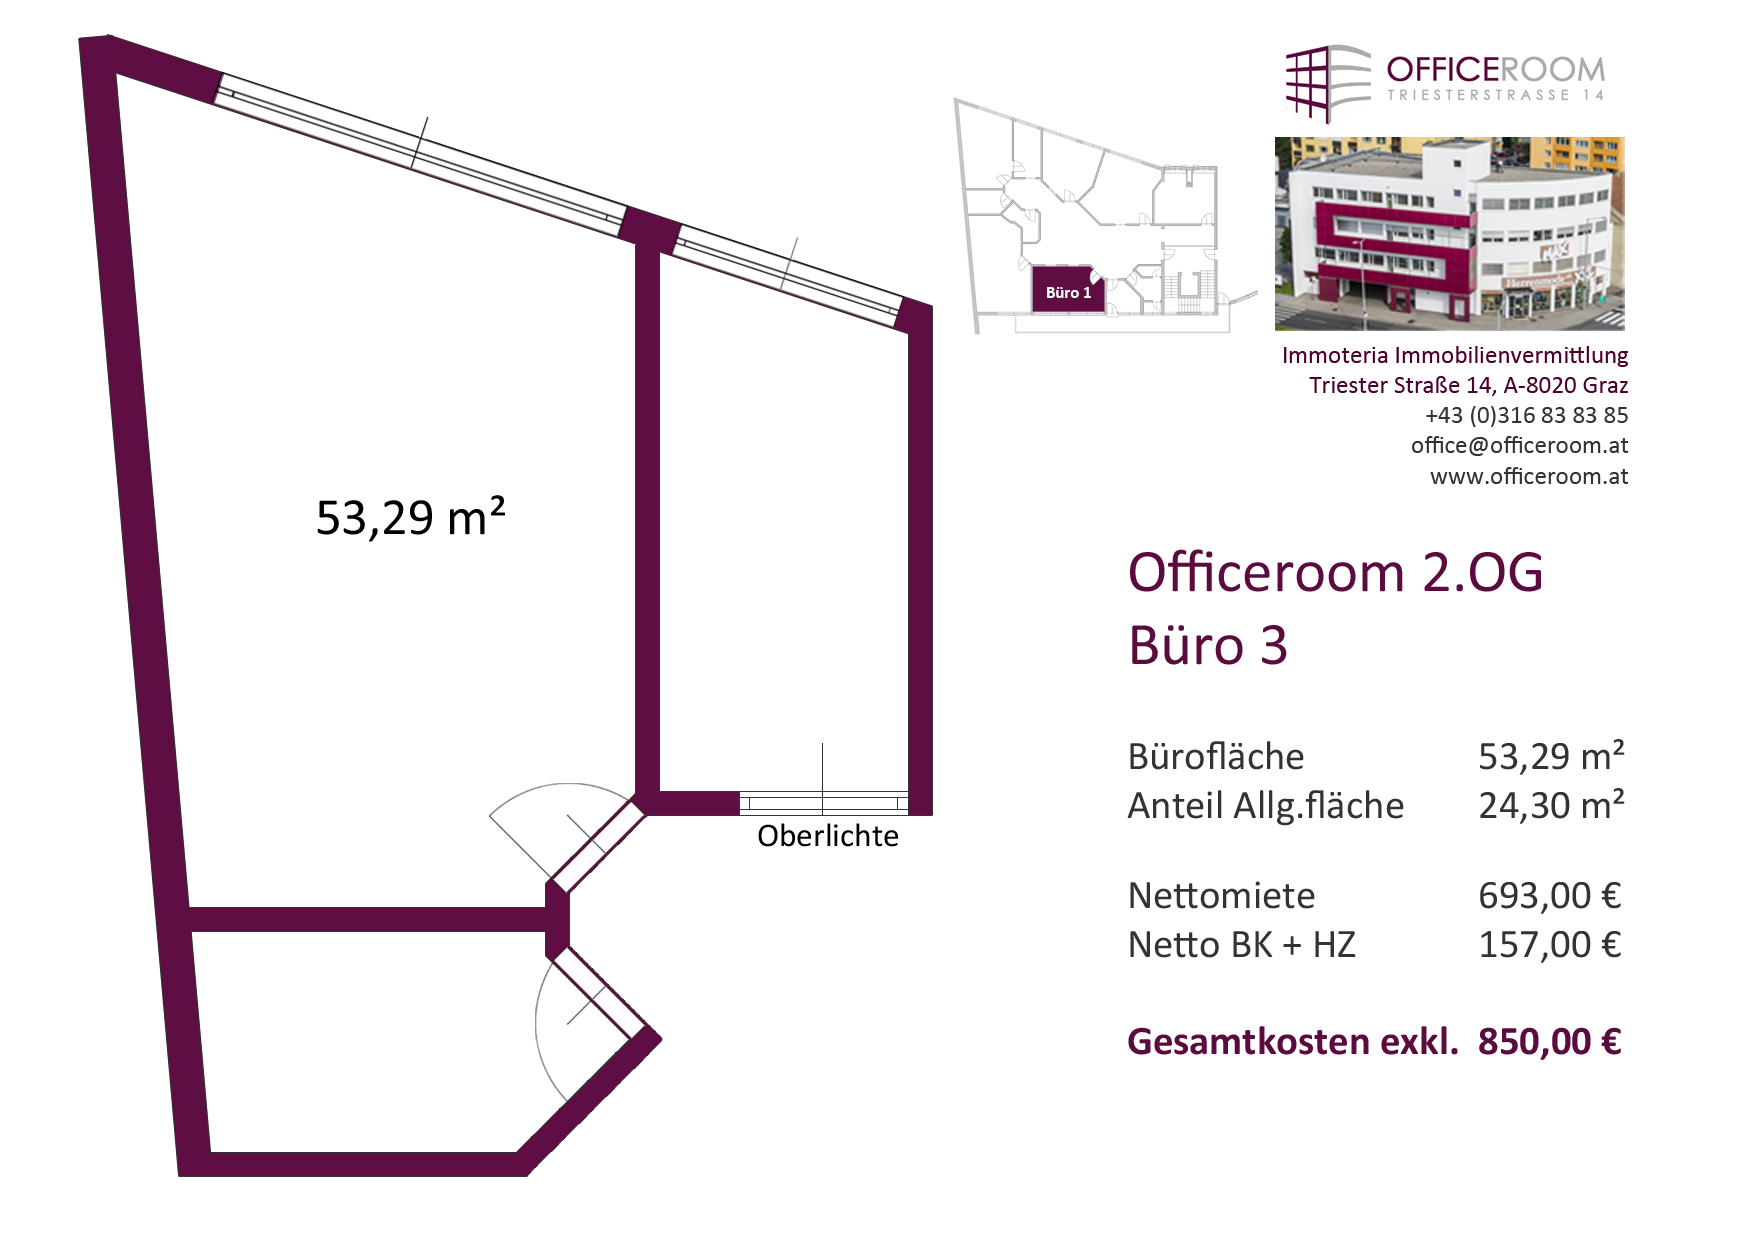 Officeroom Bürocenter, 2. OG, Büro 3, 53,29 m²